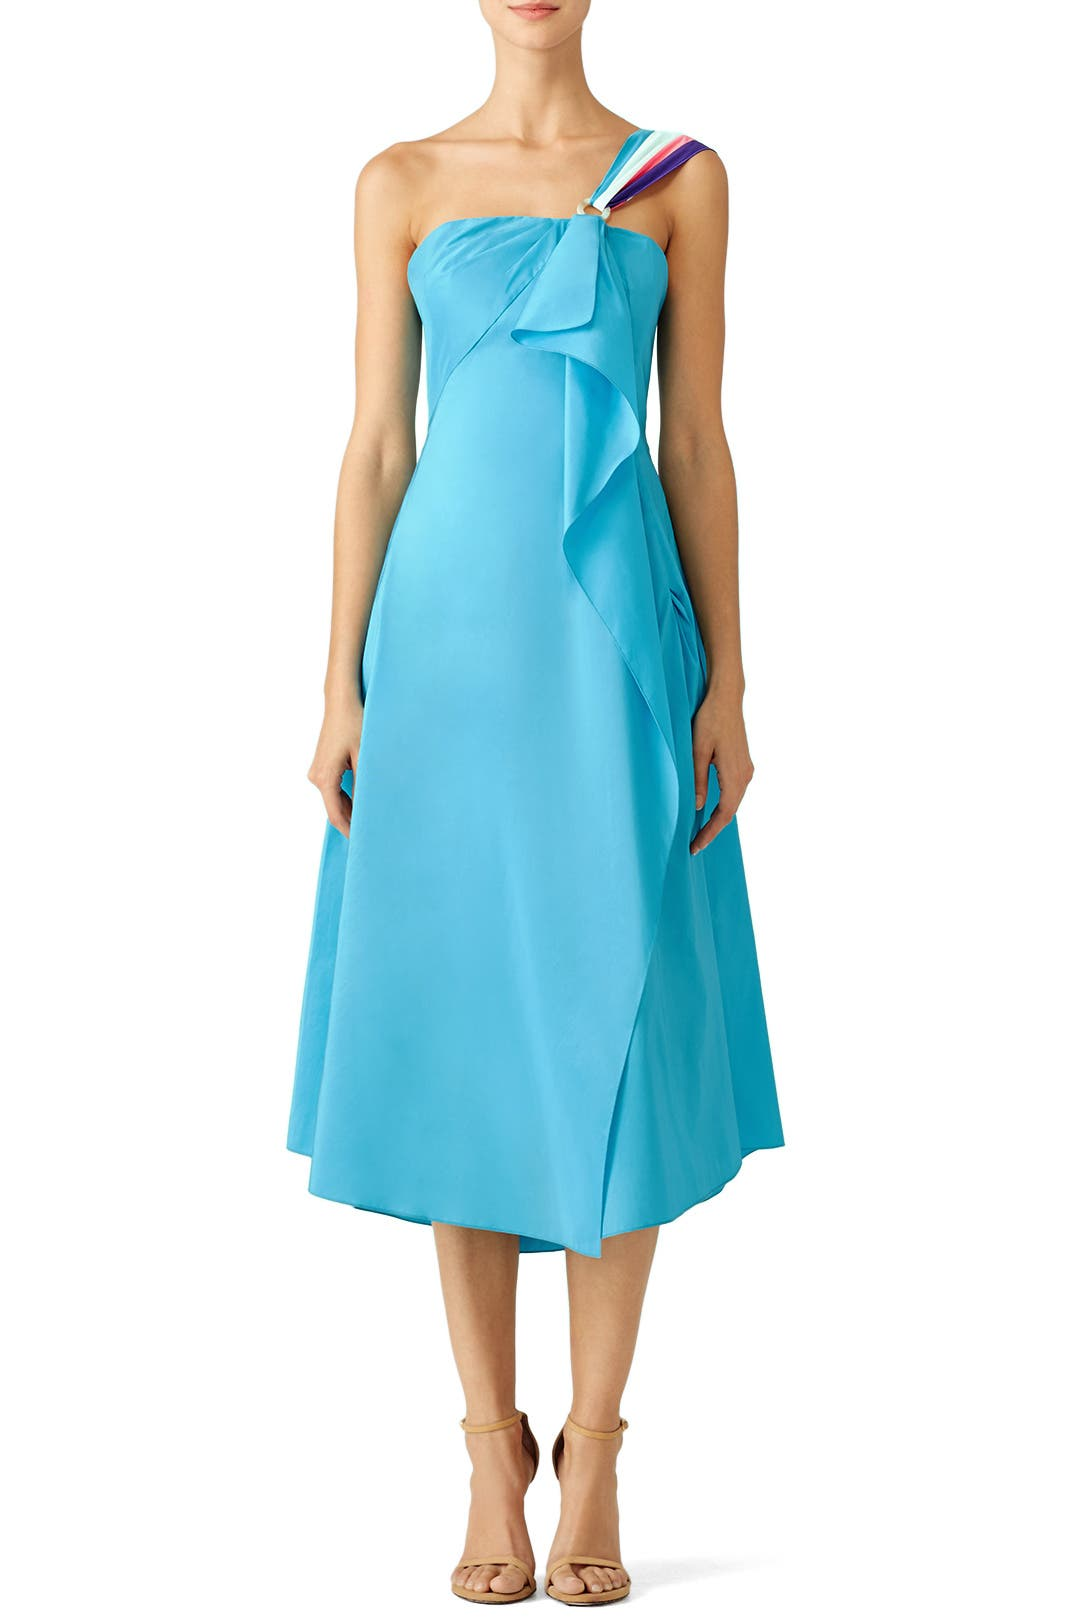 Turquoise Corset Midi Dress by Peter Pilotto for $274 | Rent the Runway